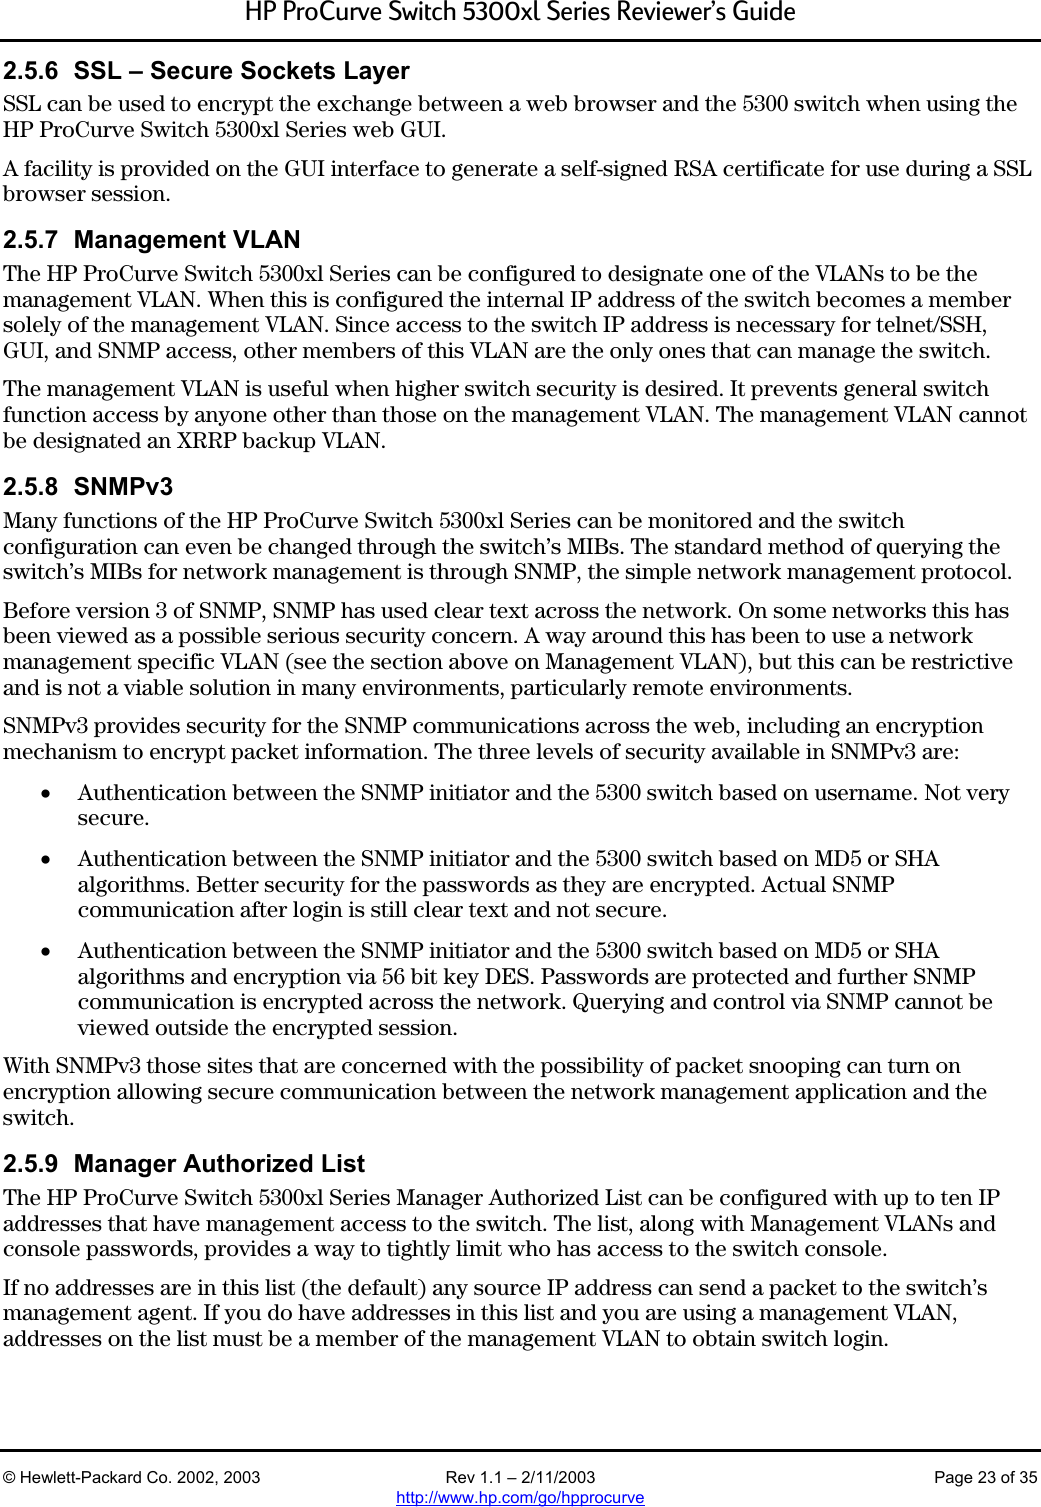 Hp 5300Xl Users Manual Procurve Switch Series Reviewer's Guide